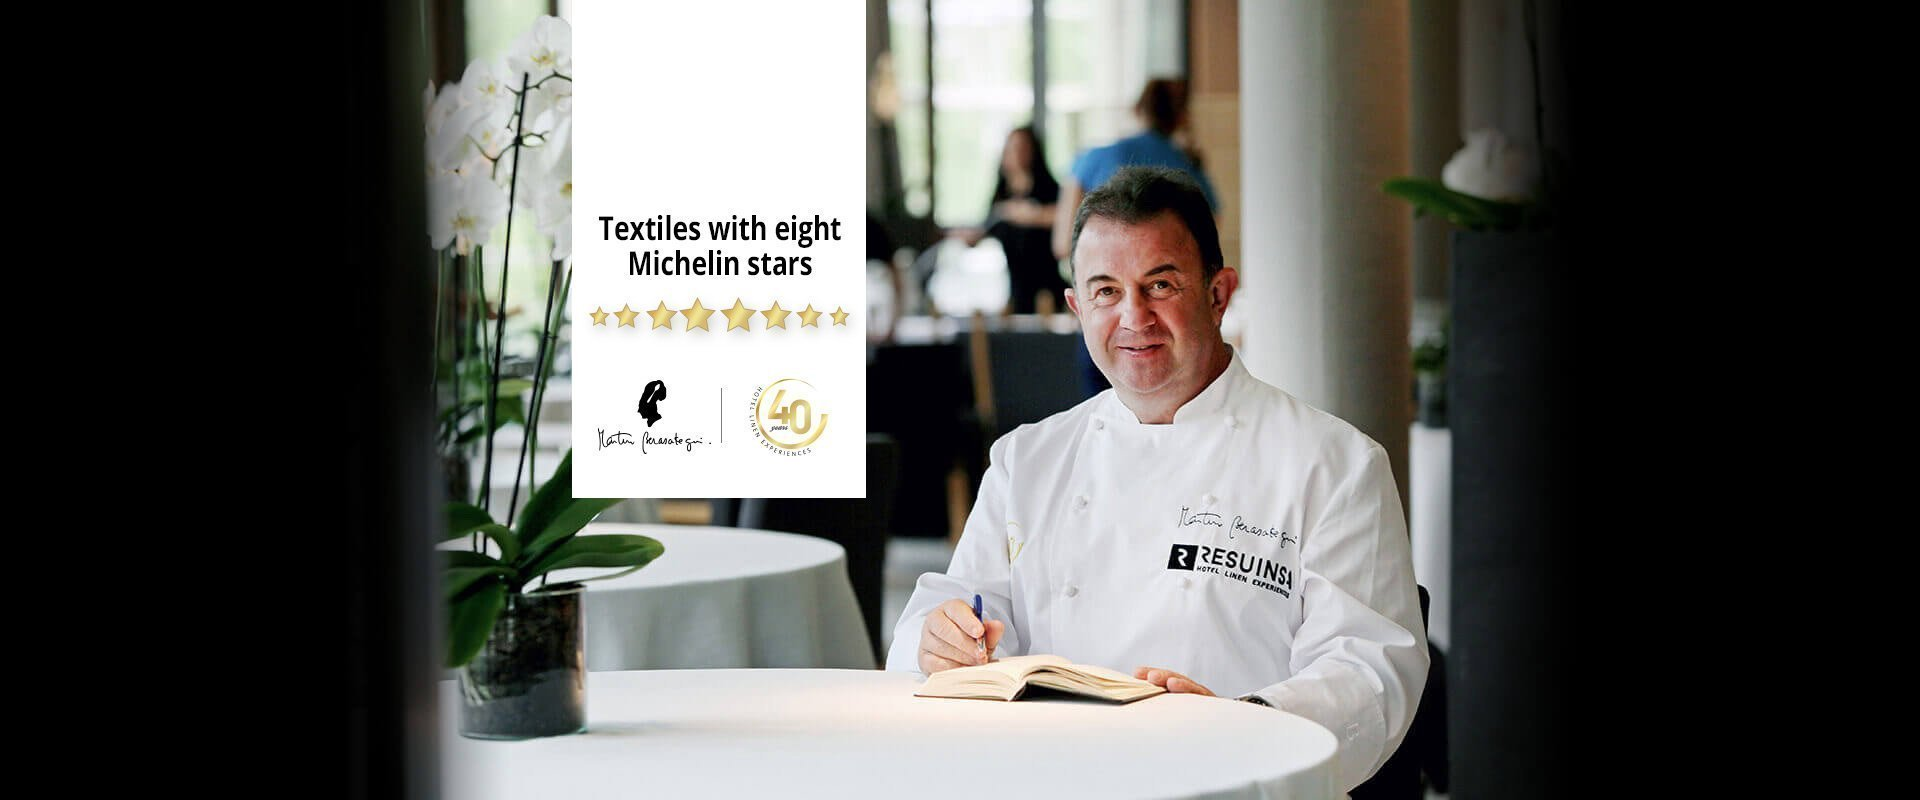 textiles-with-eight-michelin-stars